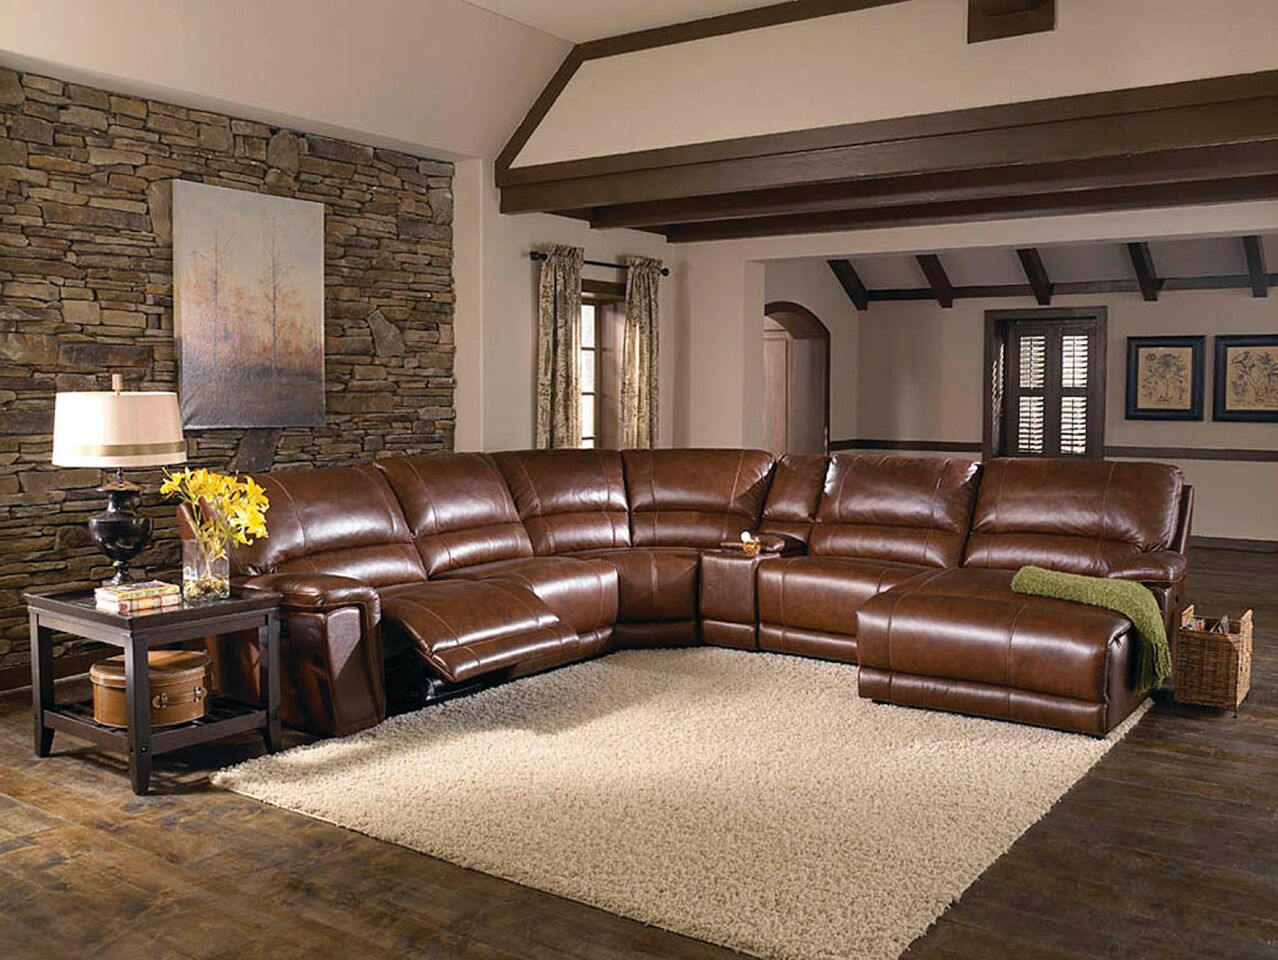 3 Living Room Furniture Items That Will Maximize Space In Your Home Watson 39 S Of Grand Rapids